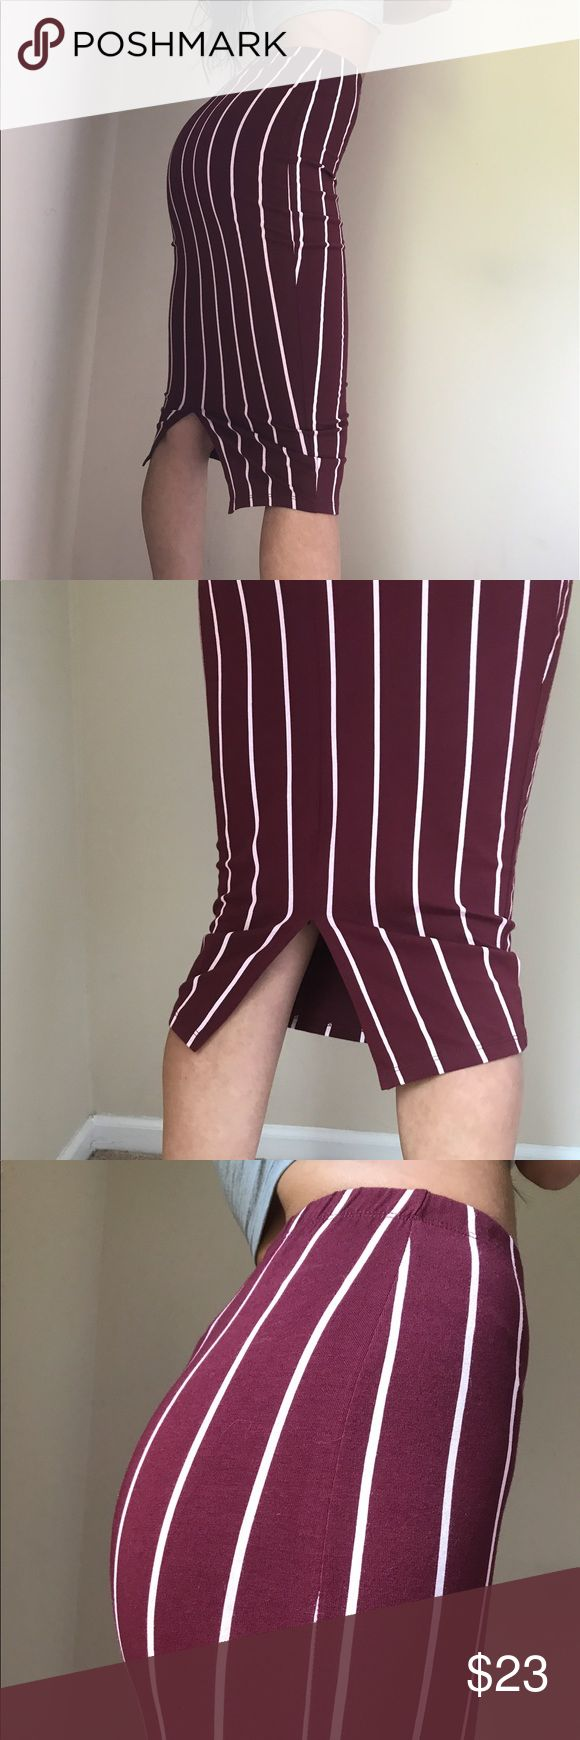 NEW ASOS Red Striped bodycon midi skirt NEW with tags! Never worn outside!  ASOS brand high quality  Midi below knee length skirt Size 0 Red+striped  Back slit  Body-con stretchy fit  95% Cotton, 5% Elastane Thin, elastic waist band Very stylish, sleek and SEXY! Form fitting and flattering! Pair with a crop top and sneakers for a cool, funky concert/festival look! OR pair with a sexy body suit and stilettos for a girls night out! ASOS Skirts Midi